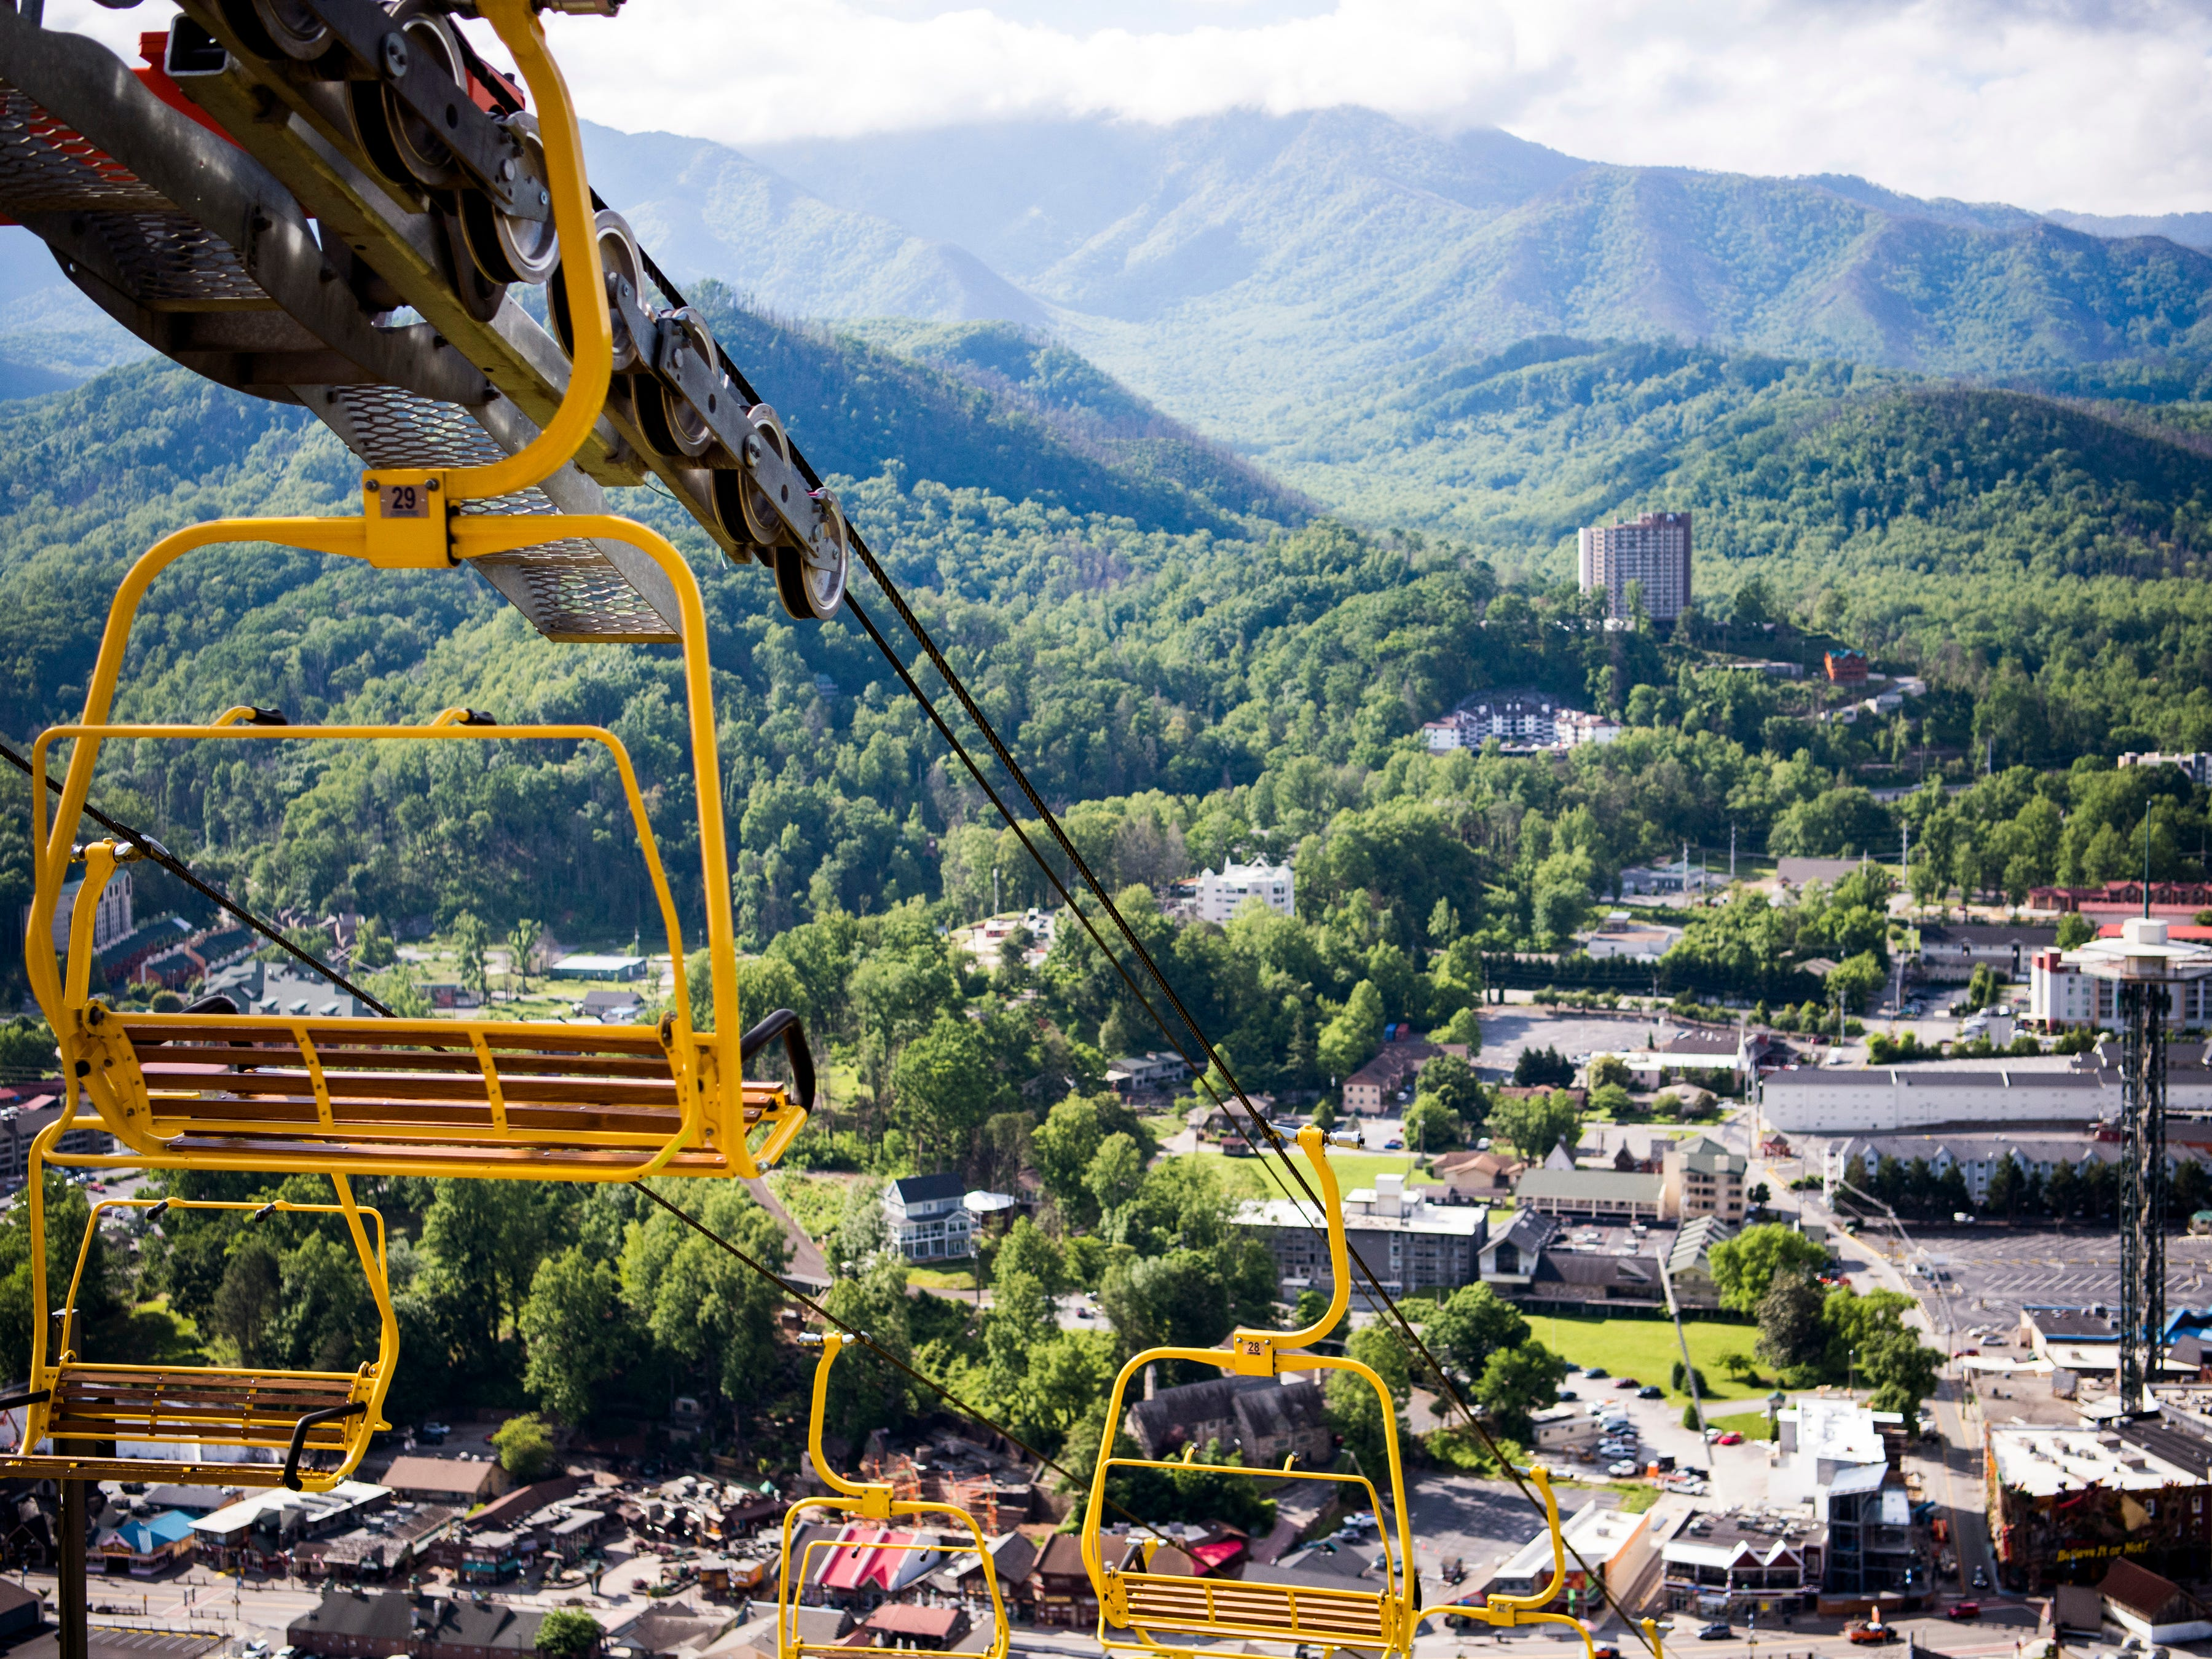 Guests visiting the Gatlinburg SkyLift Park will be able to take in panoramic views of Gatlinburg and the Smoky Mountains.